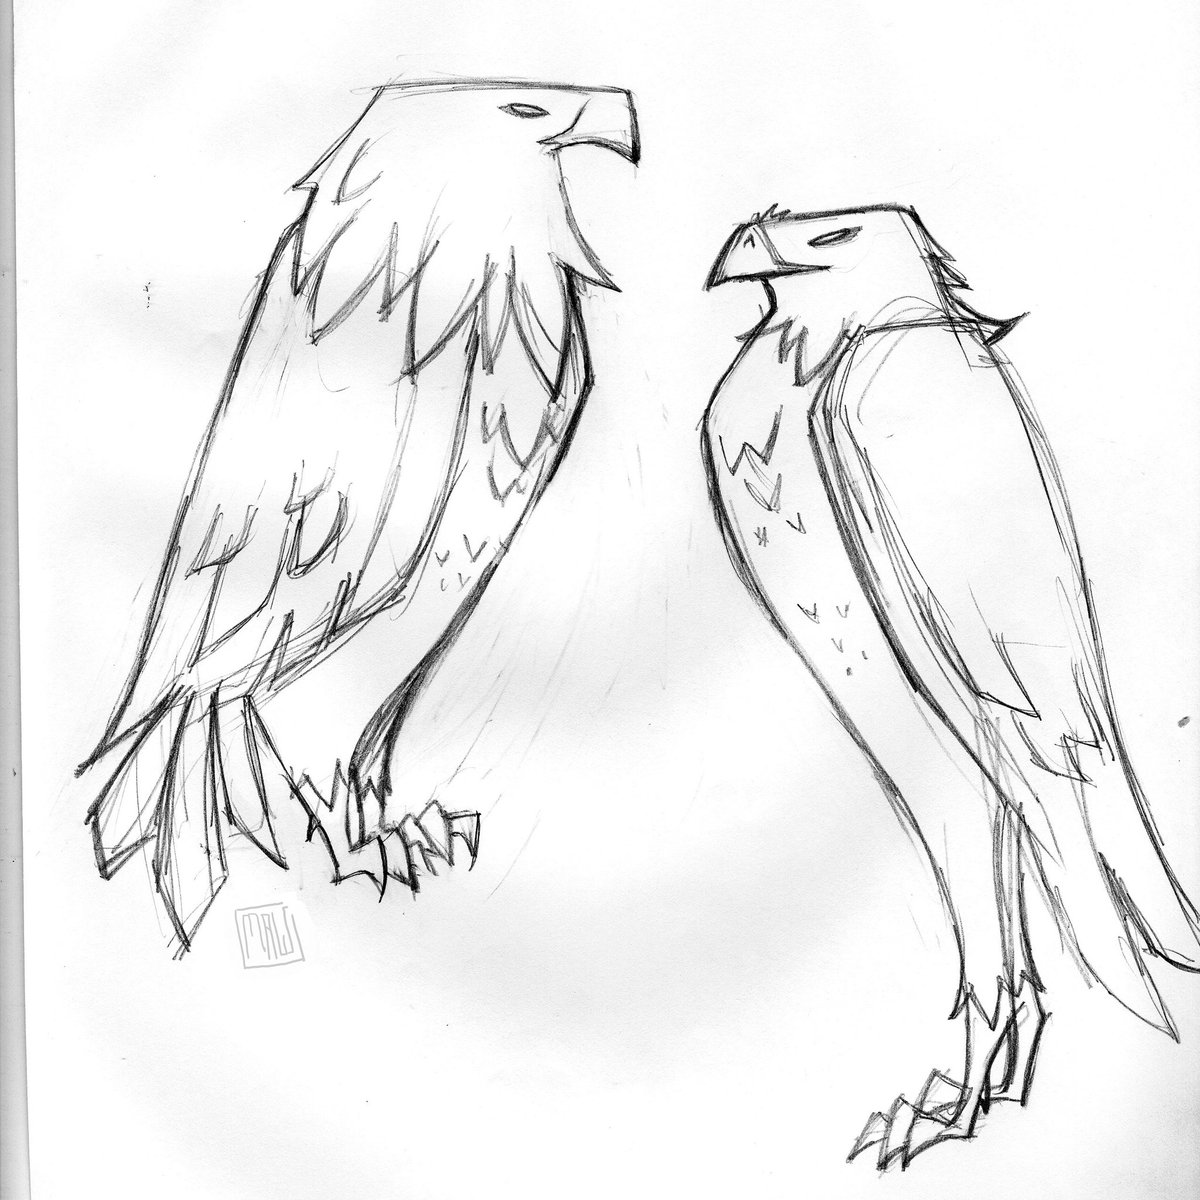 1200x1200 Taylor Maw On Twitter Quick Bird Sketches From Tracy Aviary. My